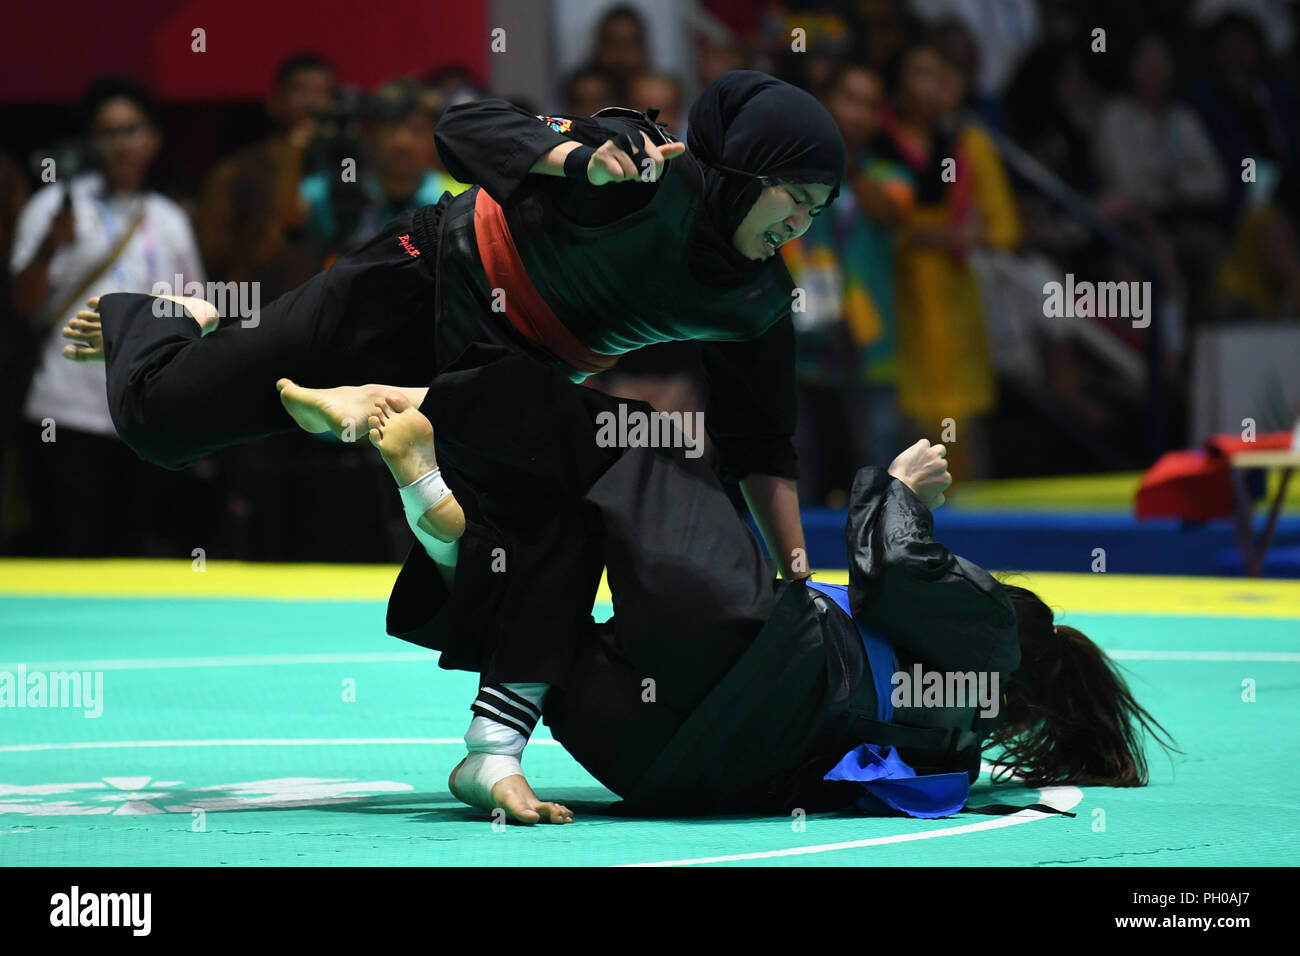 Jakarta, Indonesia. 29th Aug, 2018. Pipiet Kamelia of Indonesia (L) competes during the Pencak Silat Men's 60kg to 65kg gold medal match agaisnt Nguyen Thi Cam Nhi of Vietnam at the 18th Asian Games in Jakarta, Indonesia, Aug. 29, 2018. Credit: Pan Yulong/Xinhua/Alamy Live News - Stock Image